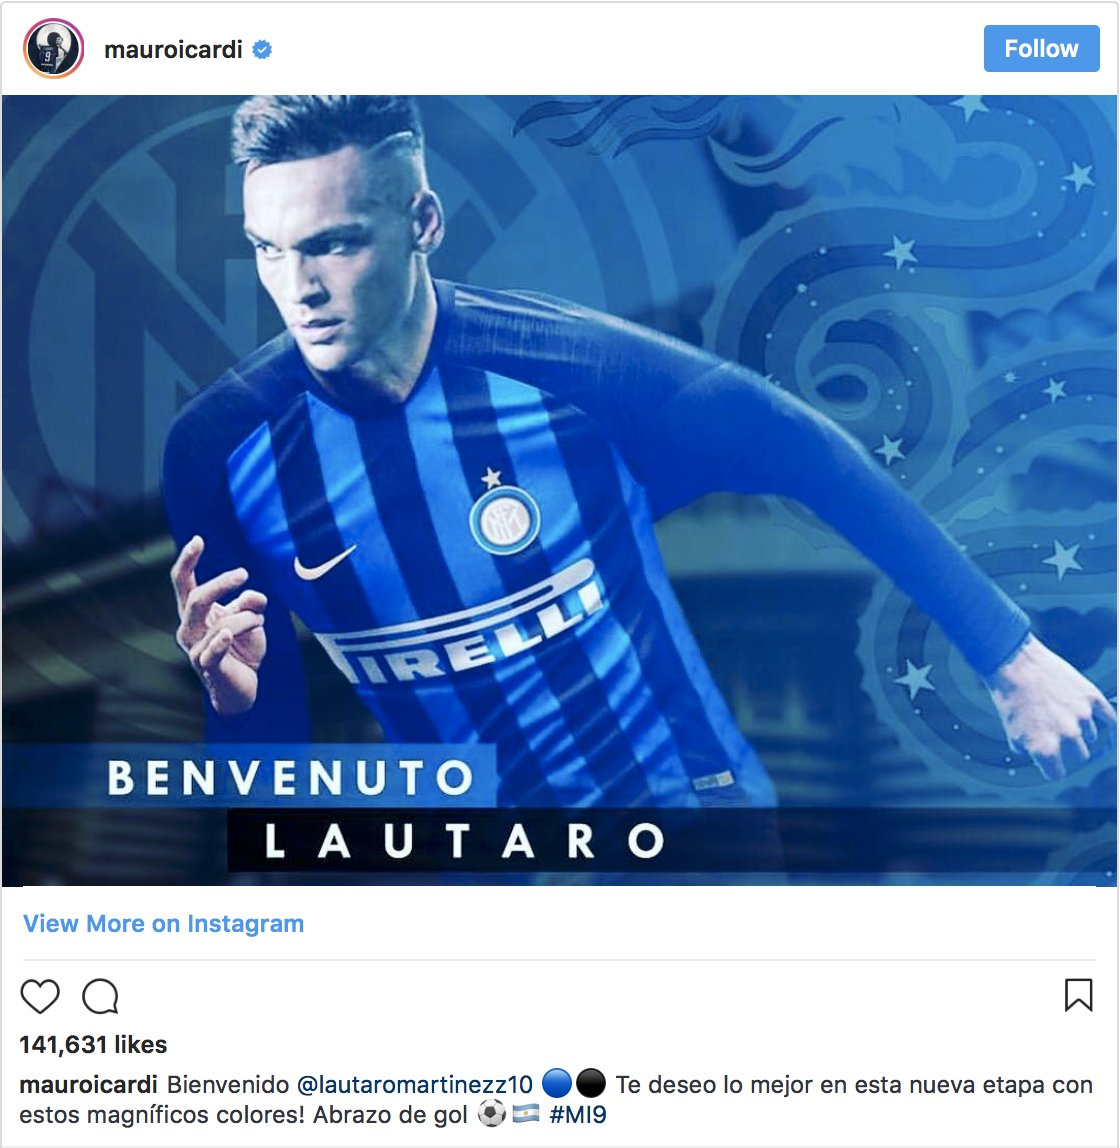 More in the tabloids that Chel icardi